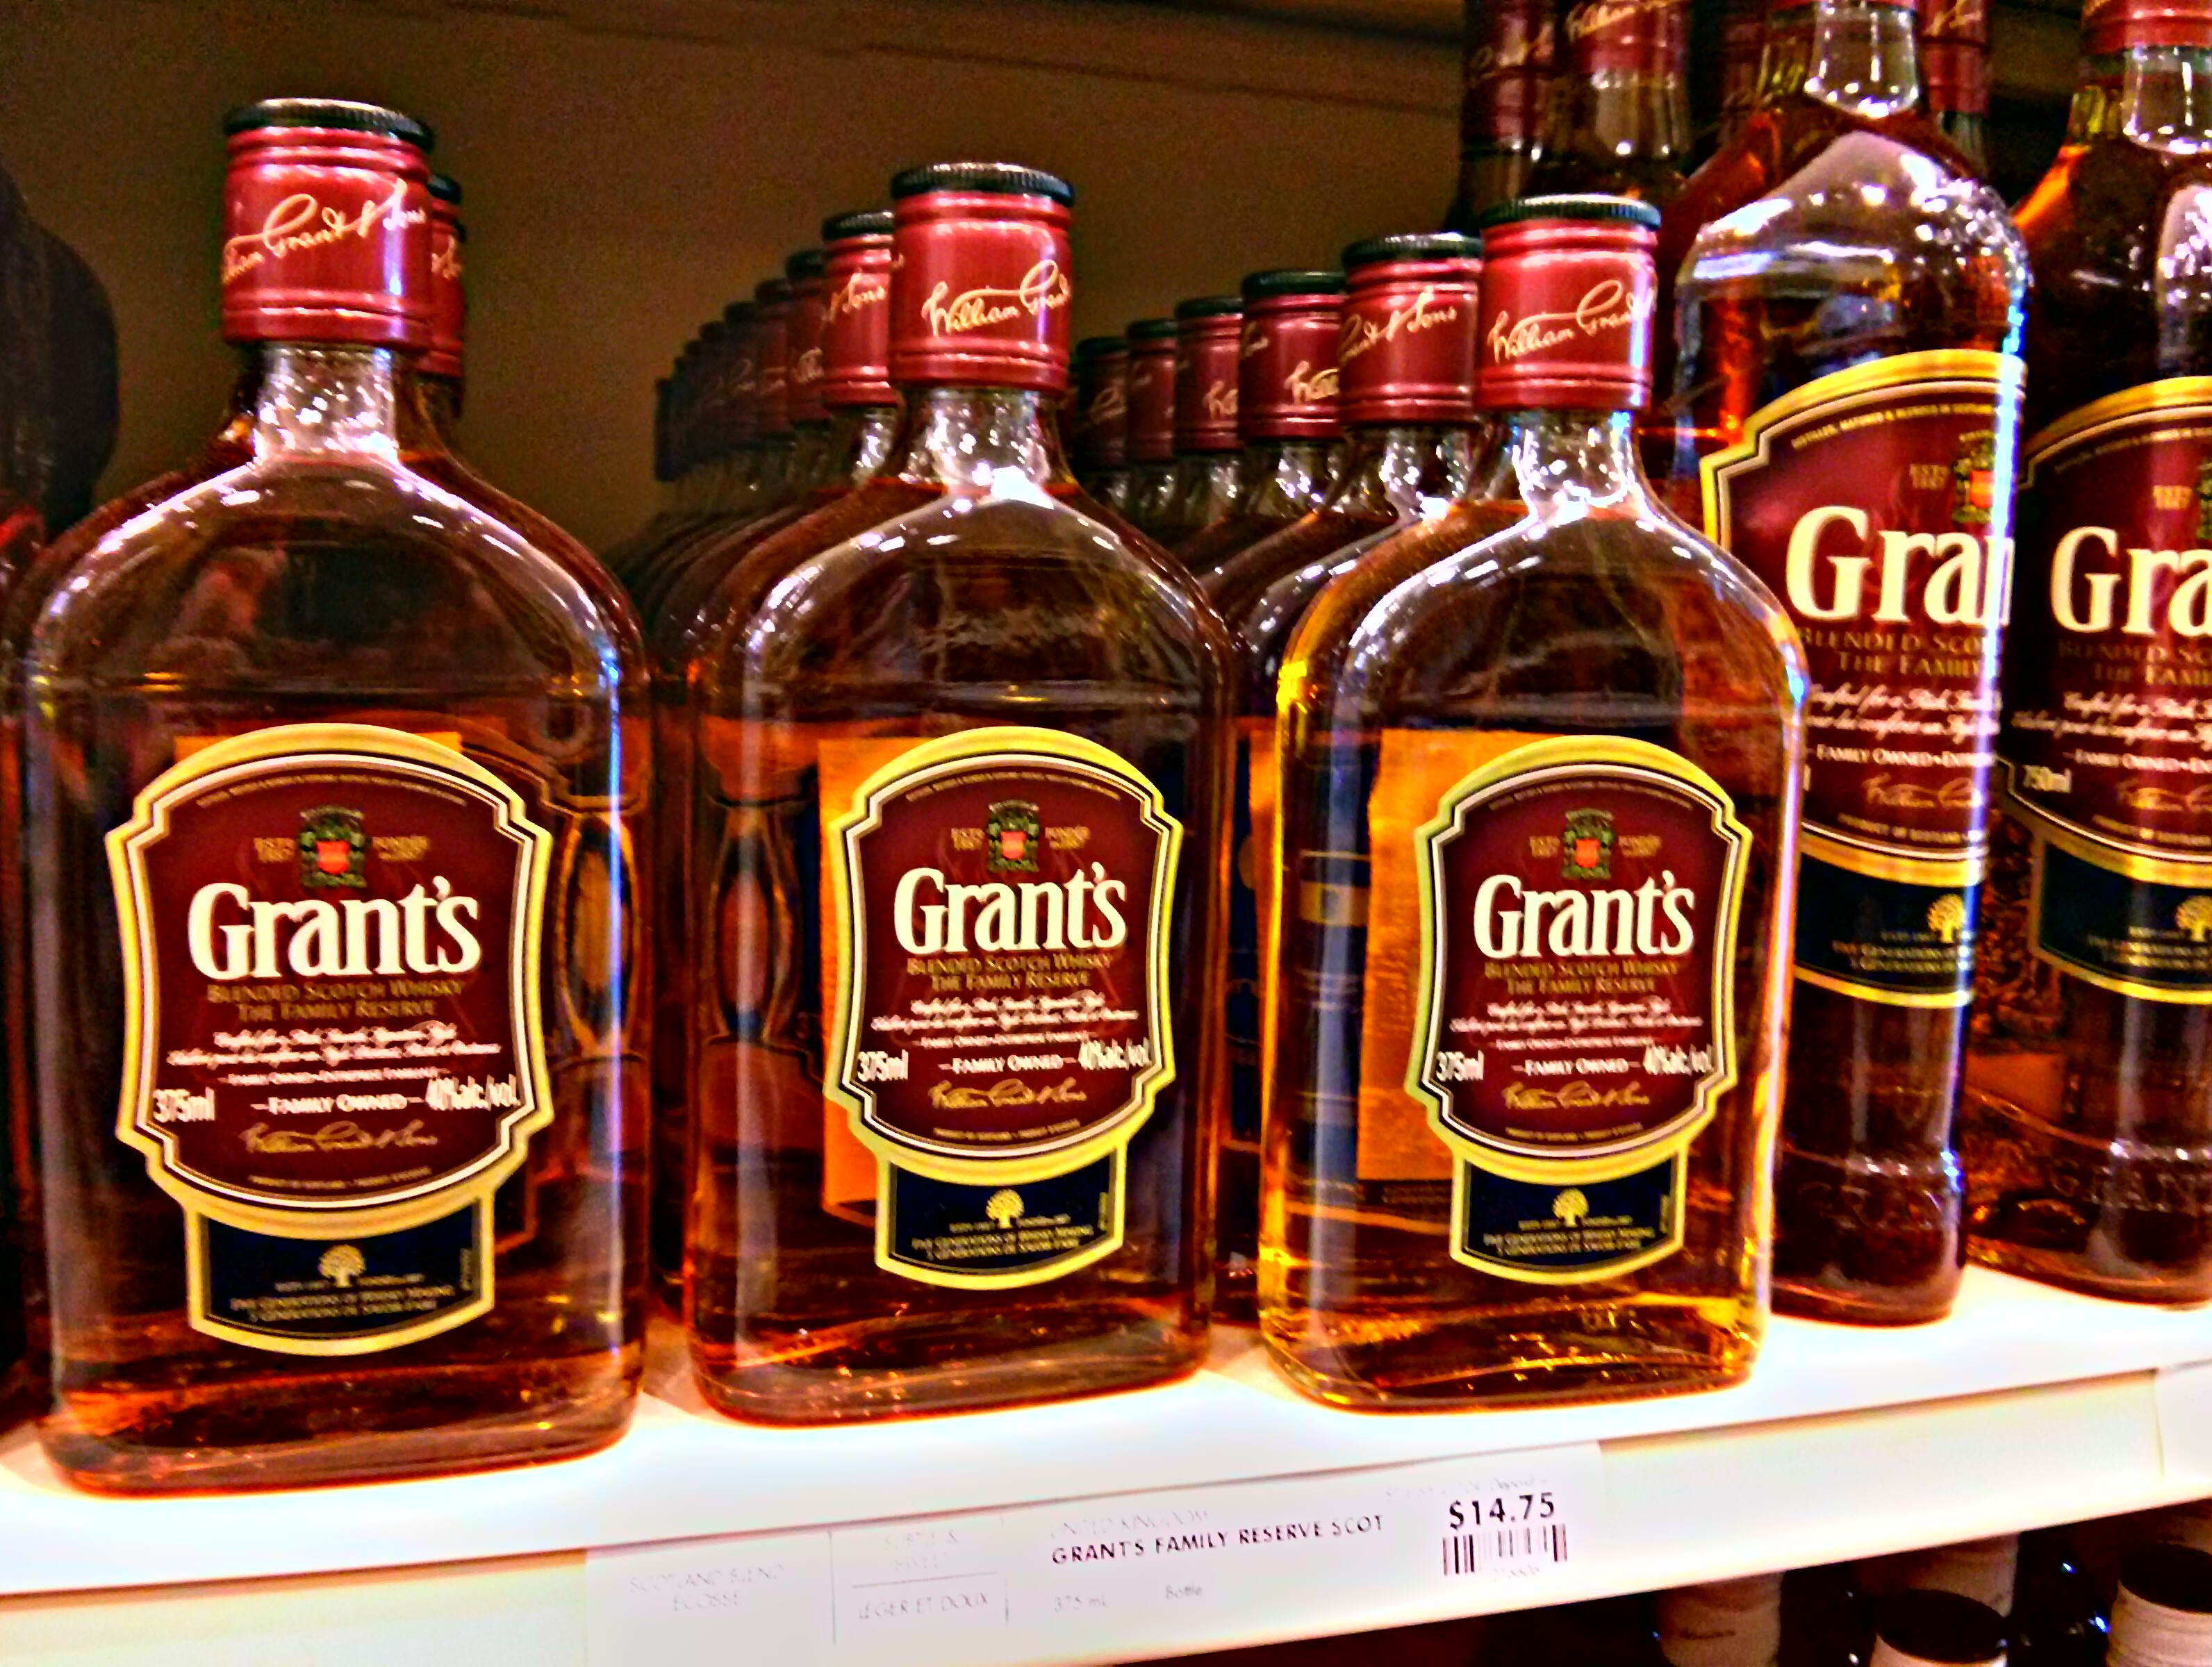 Grant's Family Reserve Blended Scotch Whisky with Dan, Ryan & Goran